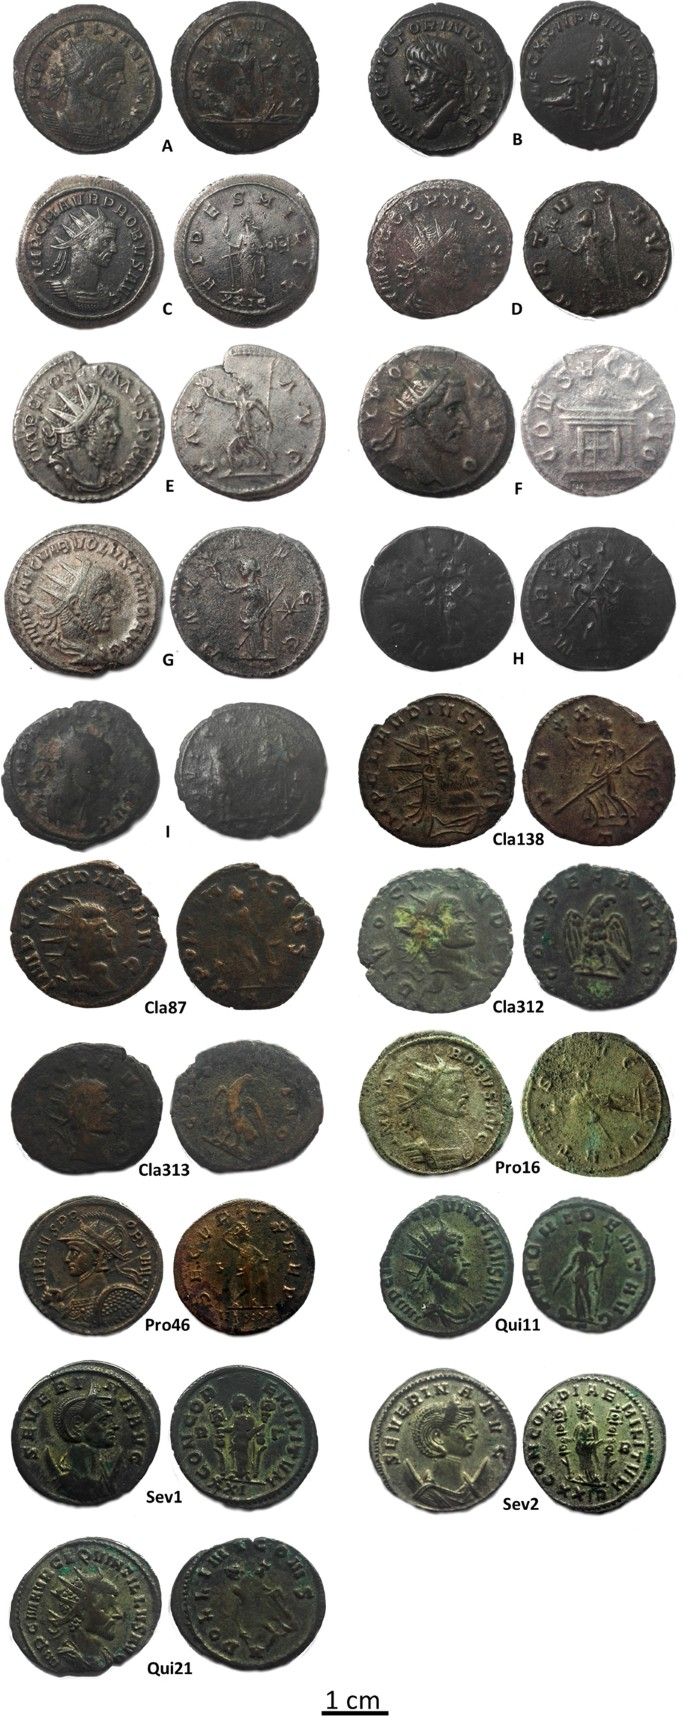 FIB-FESEM and EMPA results on Antoninianus silver coins for